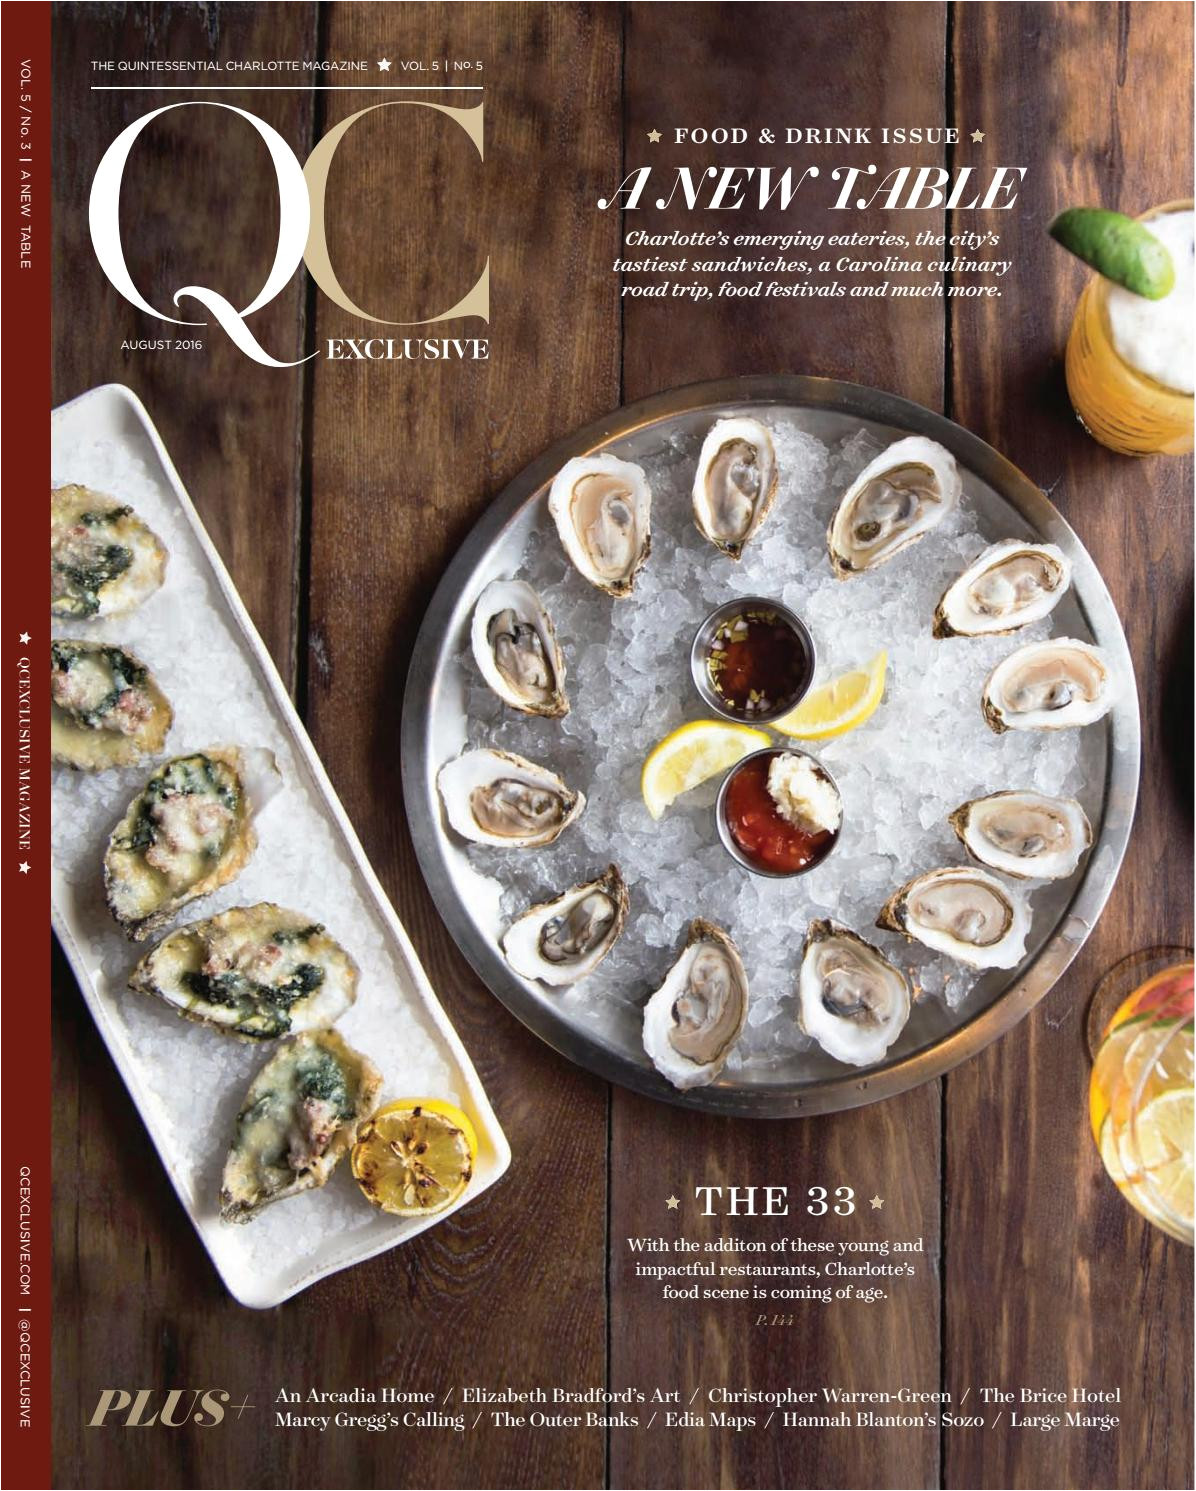 33 2016 issue 5 the food issue by qc exclusive magazine issuu